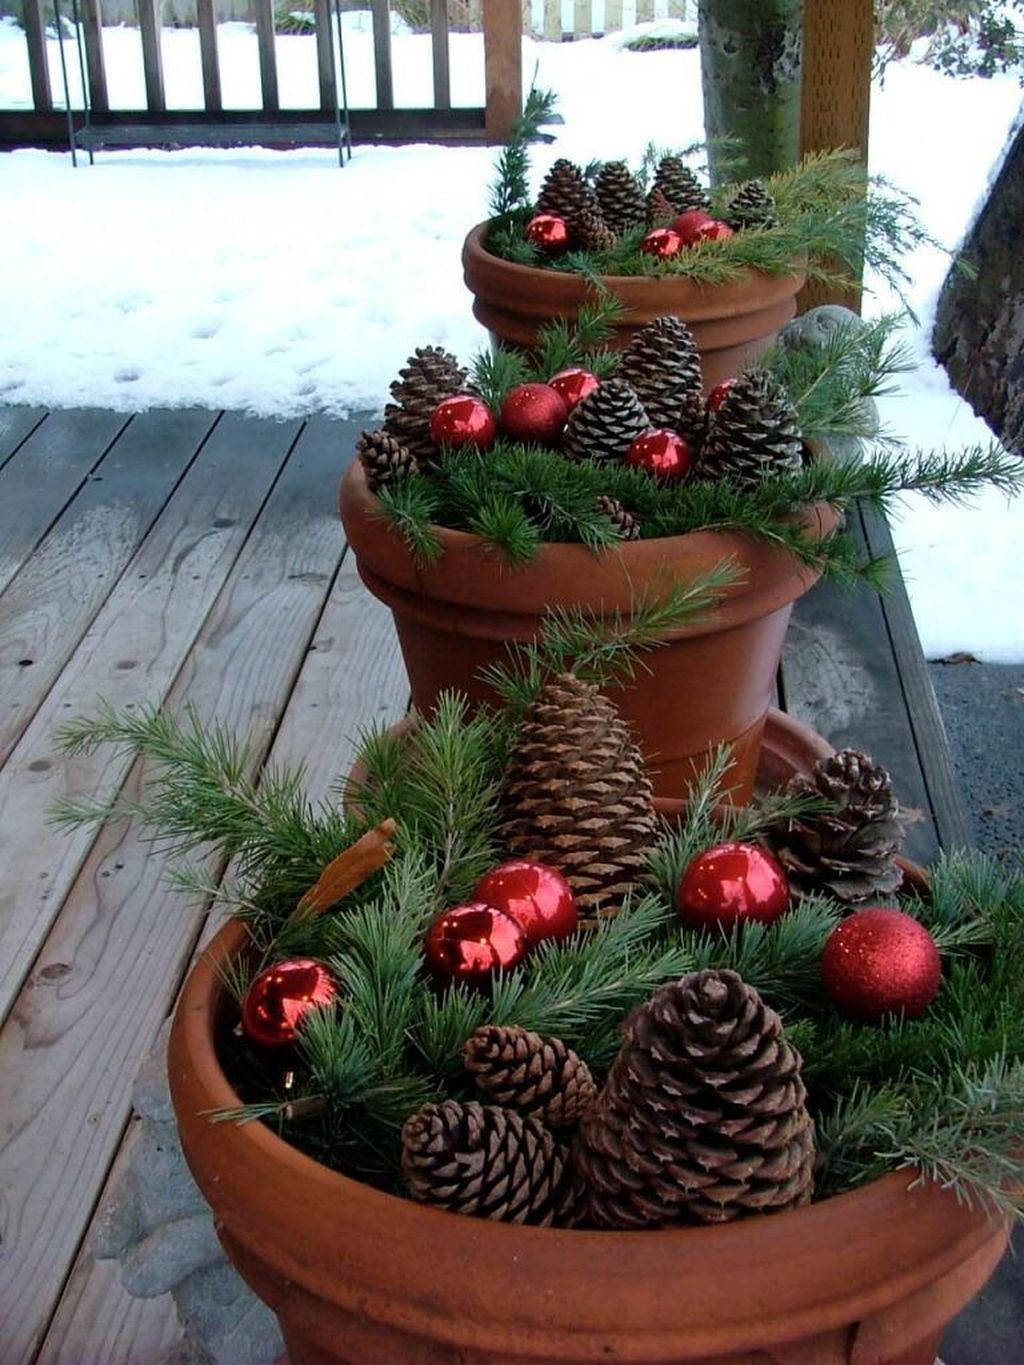 Marvelous Outdoor Holiday Planter Ideas To Beauty Porch Décor 19